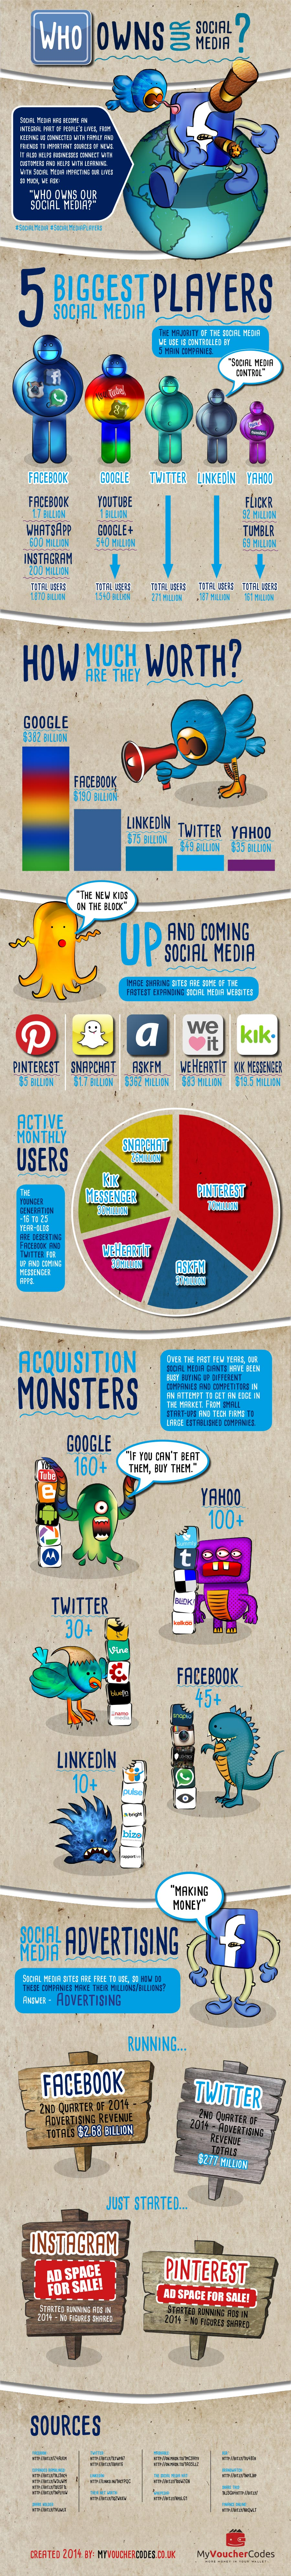 Who-Owns-Our-Social-Media-Infographic